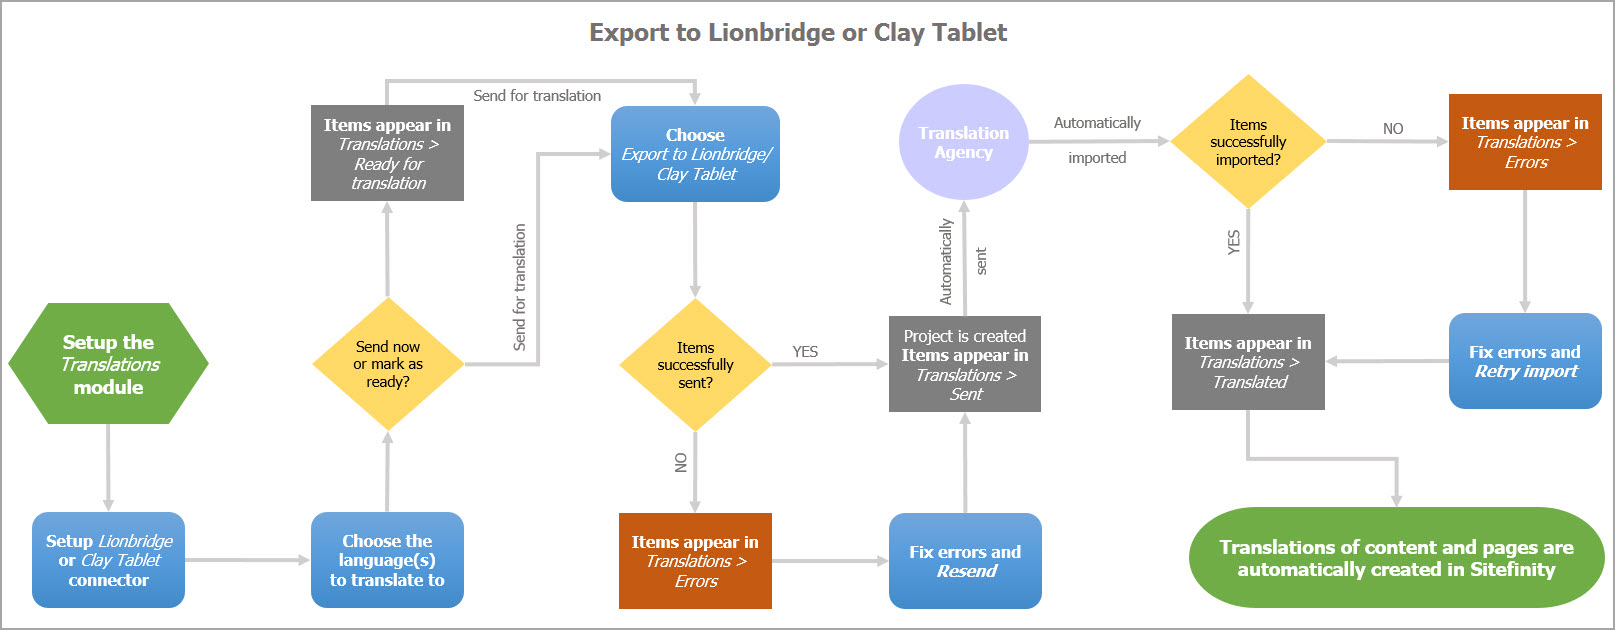 Export to Clay Tablet